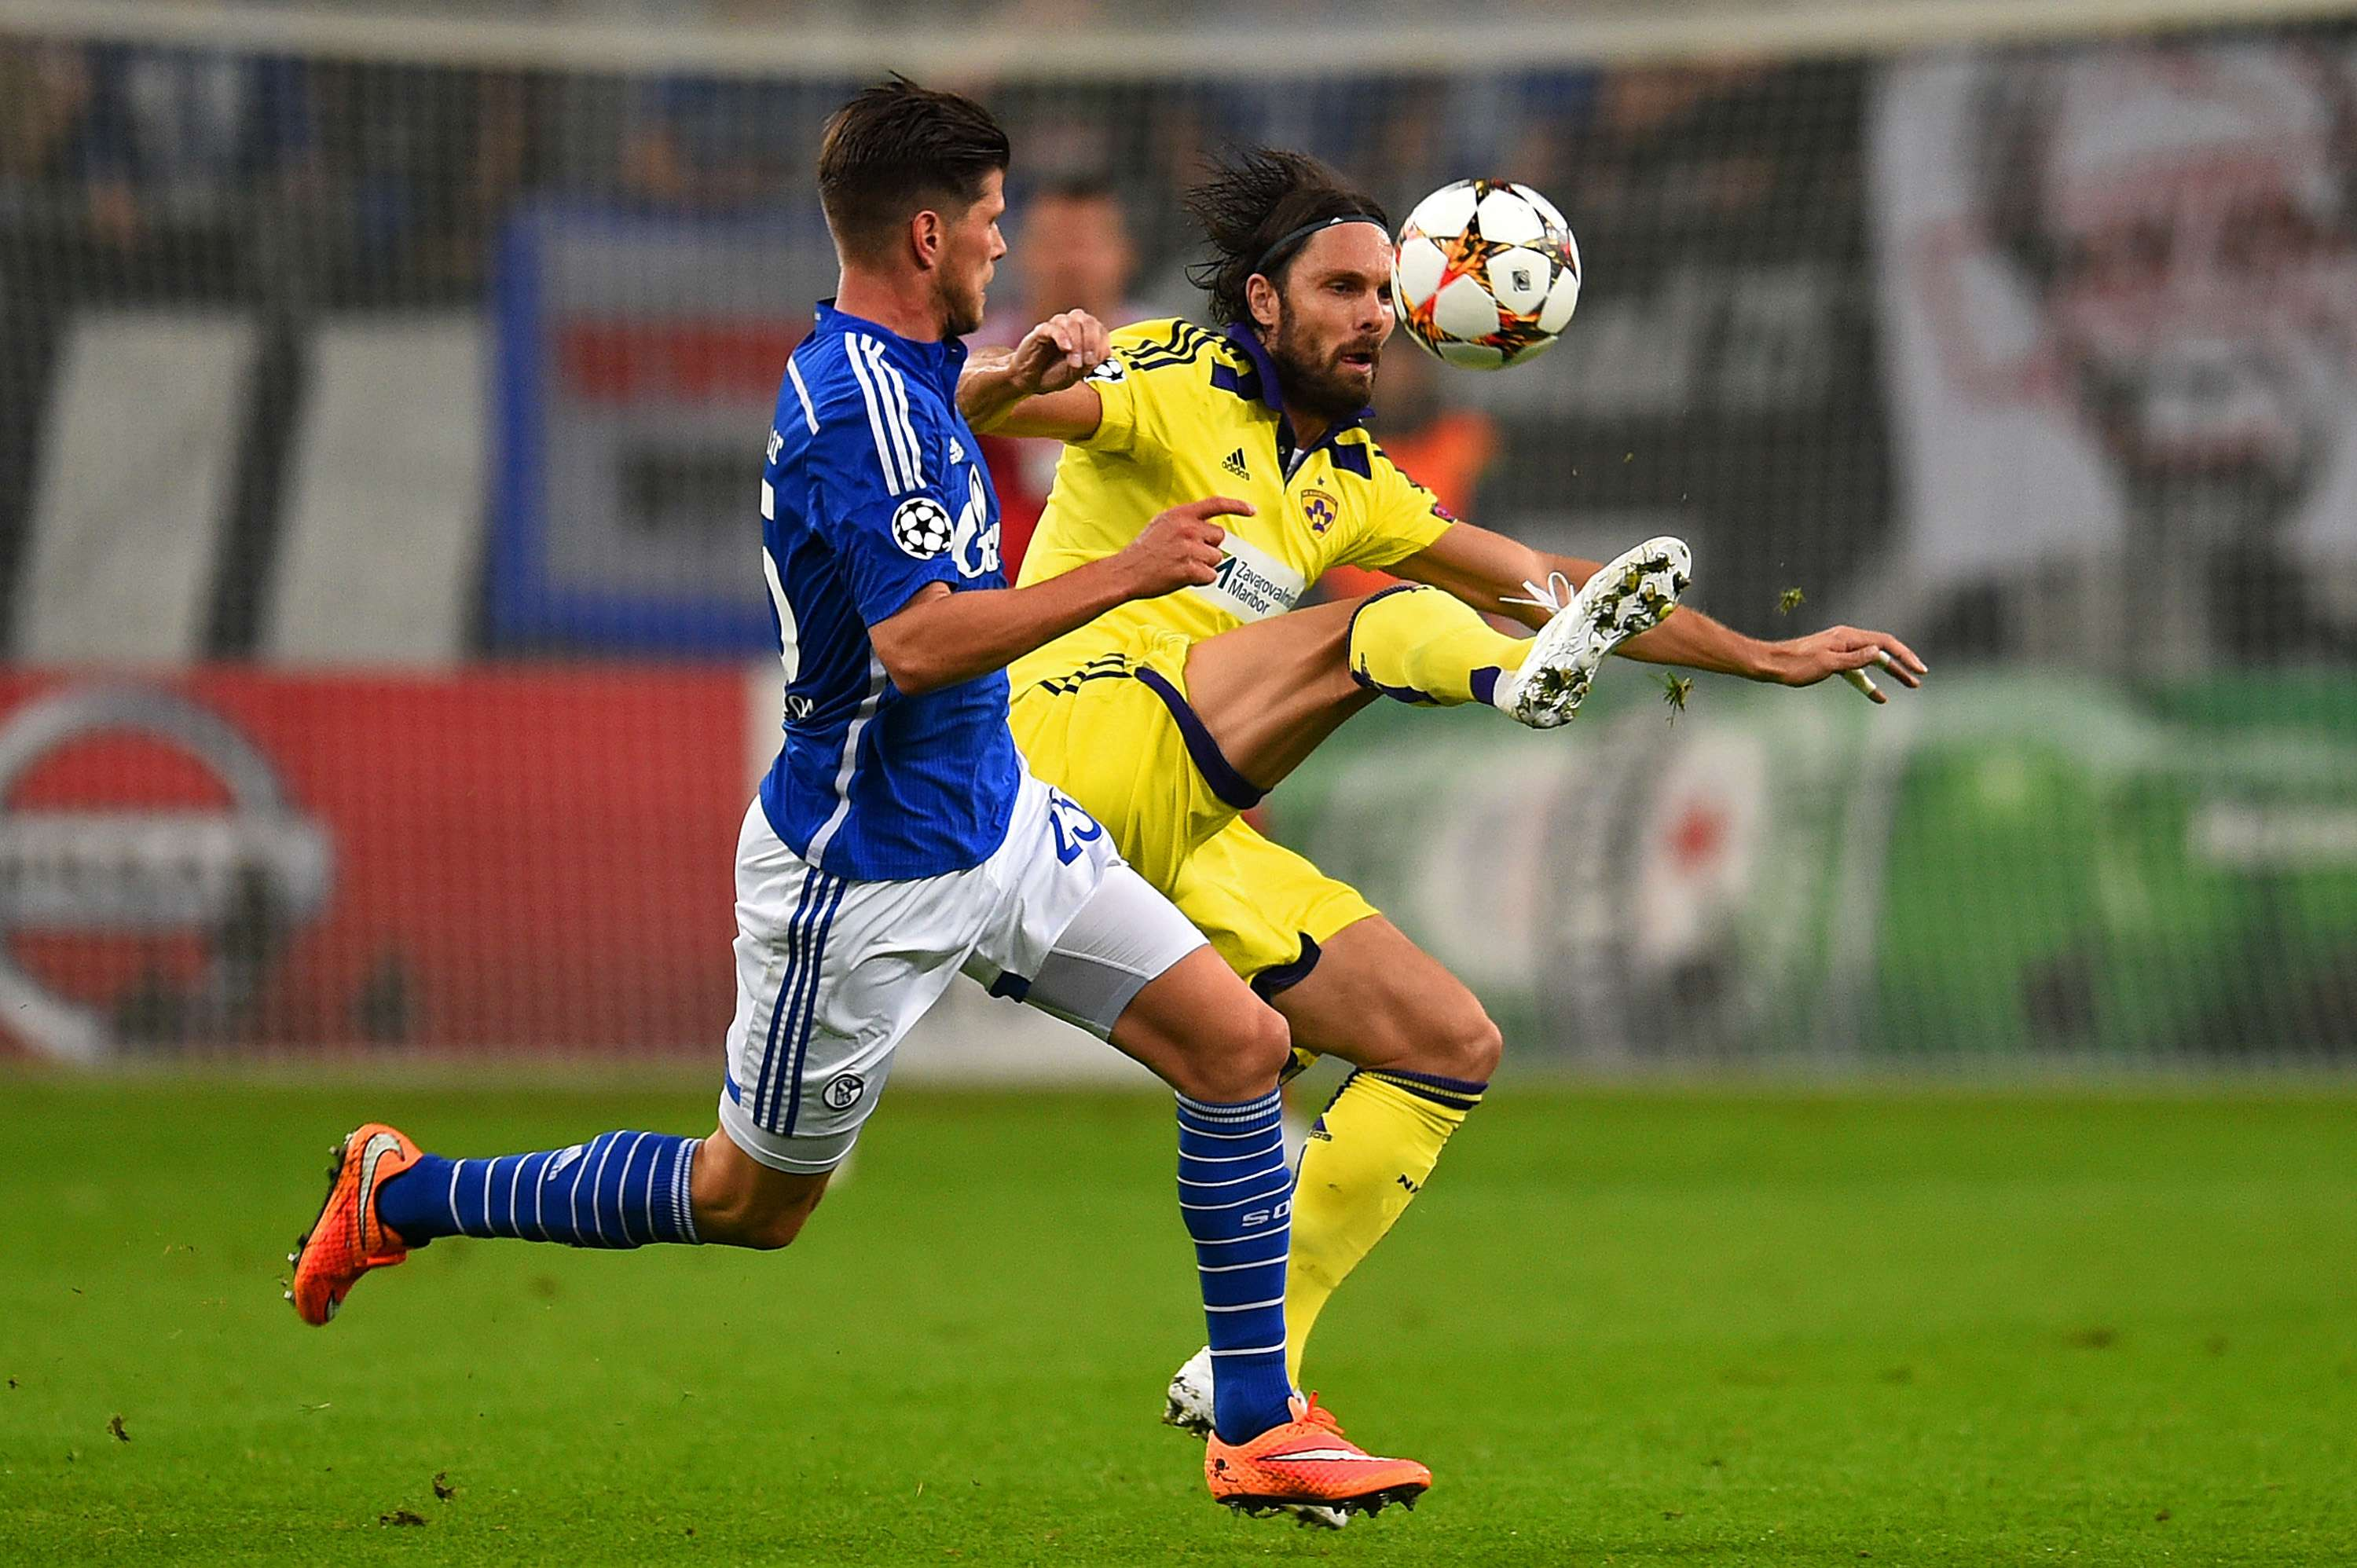 Schalke 04 y Maribor empatan 1-1 en la Champions League. Foto: Getty Images